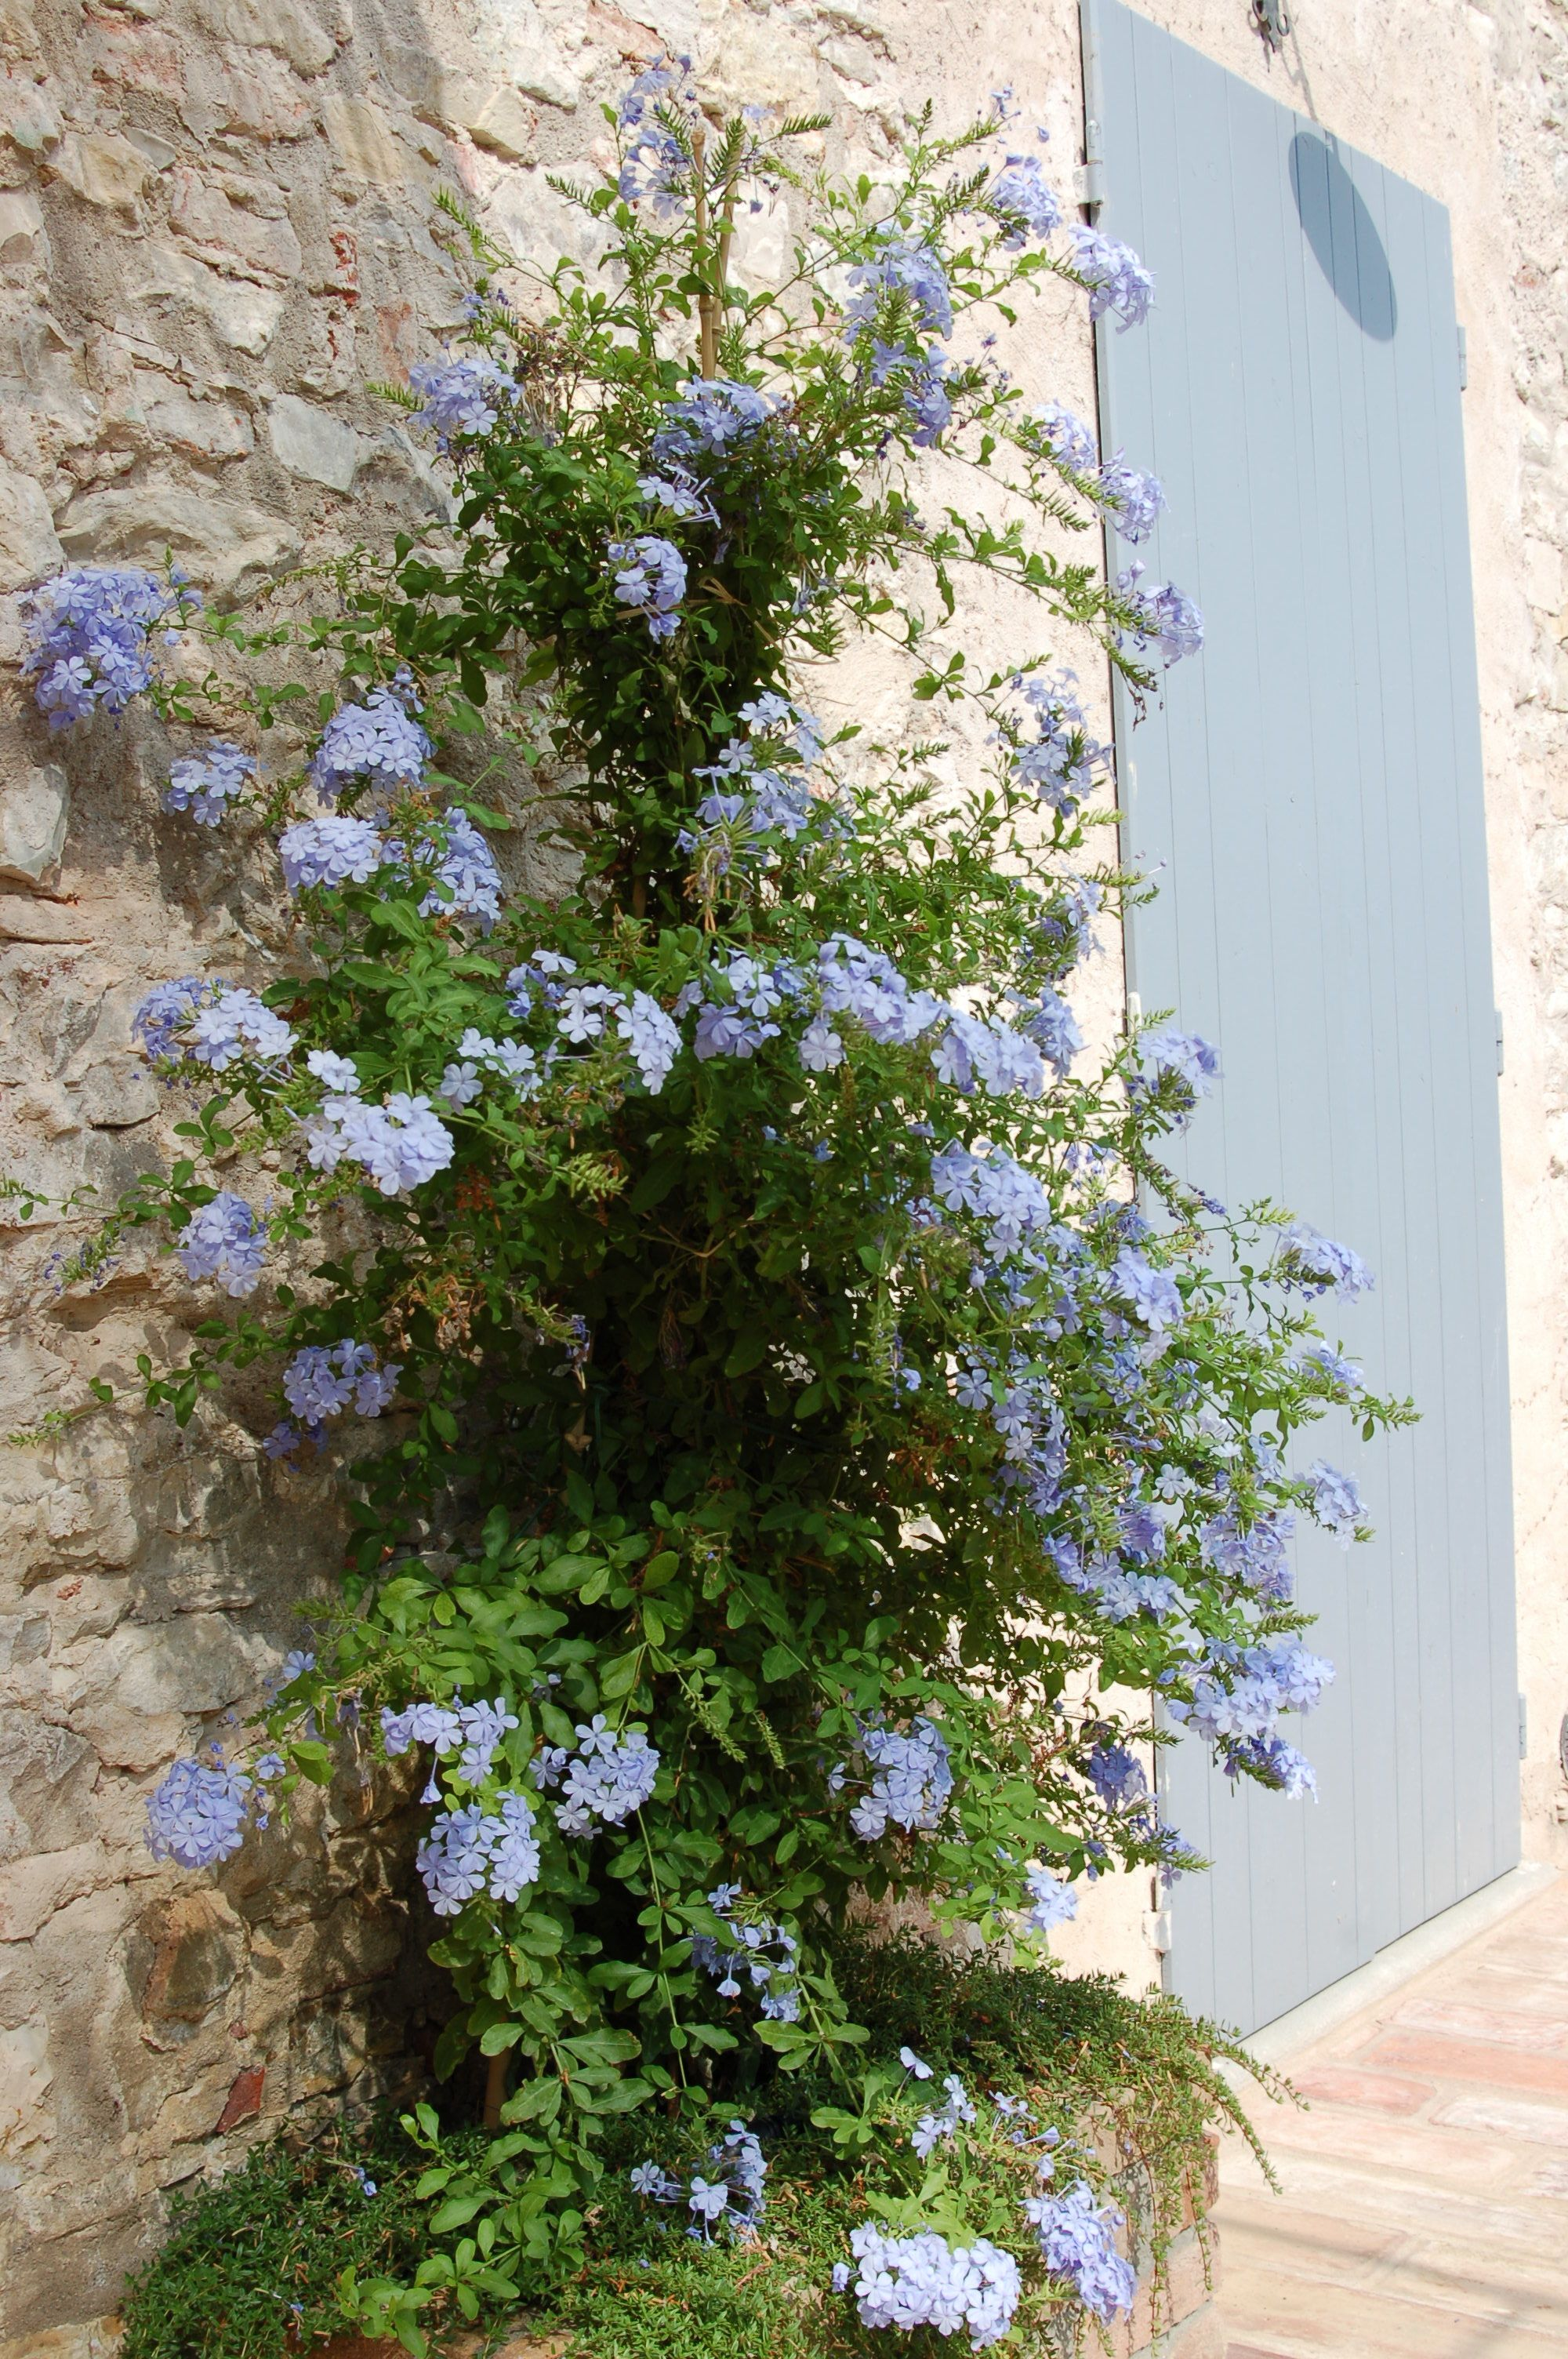 Concime Per Glicine In Vaso plumbago. for behind the bird of paradise to climb up